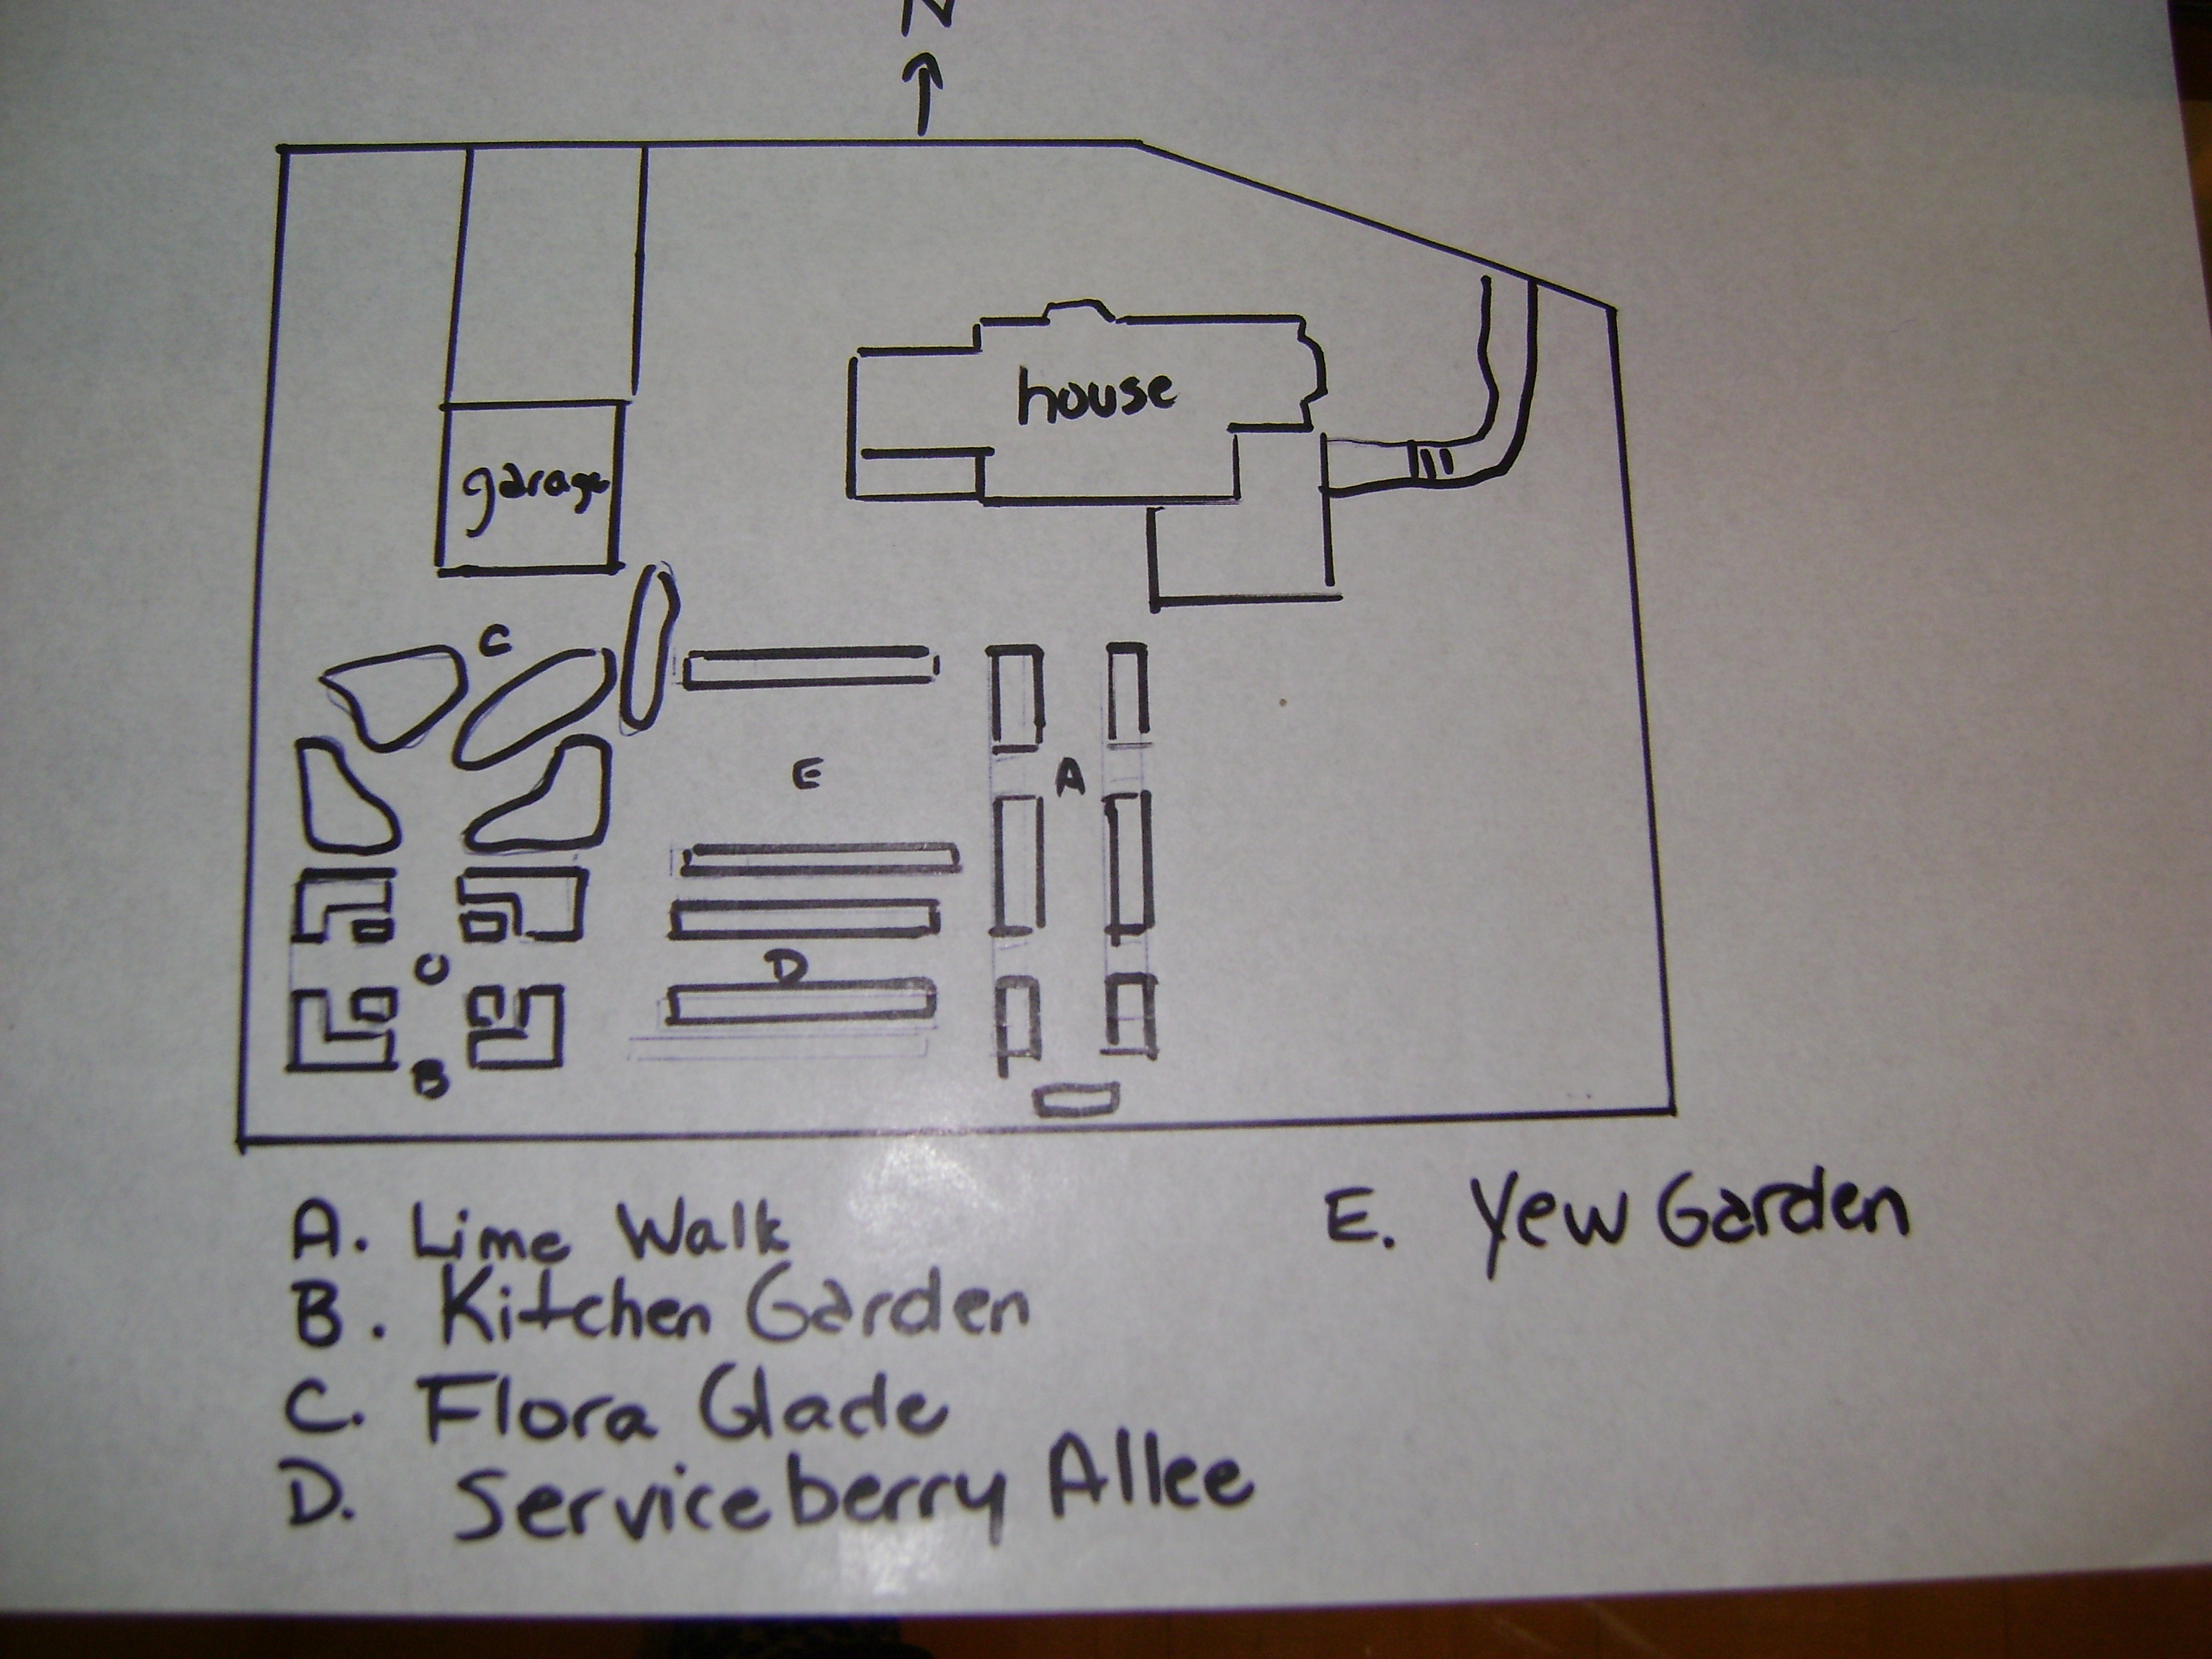 gardenoct09 021 jacobs mileage master wiring diagram troubleshooting diagrams jacobs electronics mileage master wiring diagram at mifinder.co